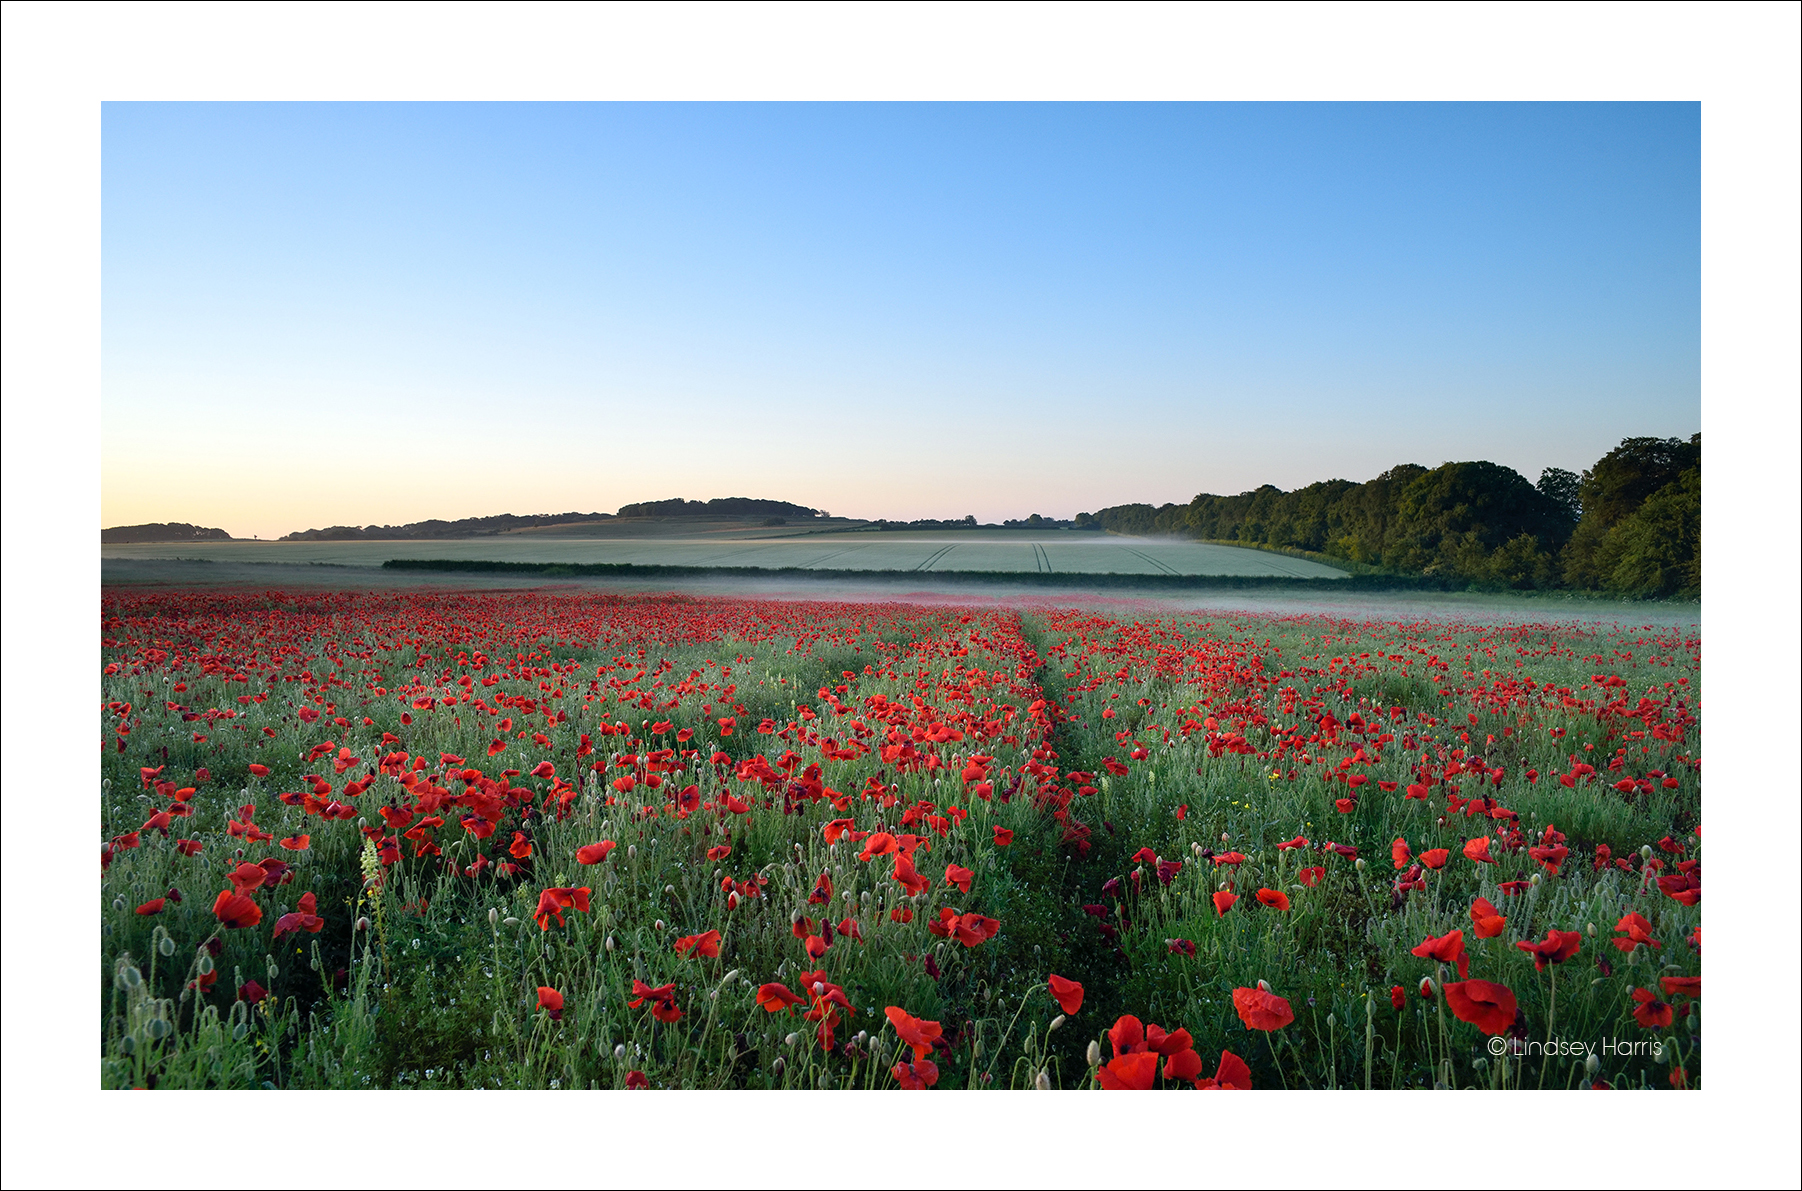 A photo of Dorset red poppies at dawn, by Lindsey Harris.